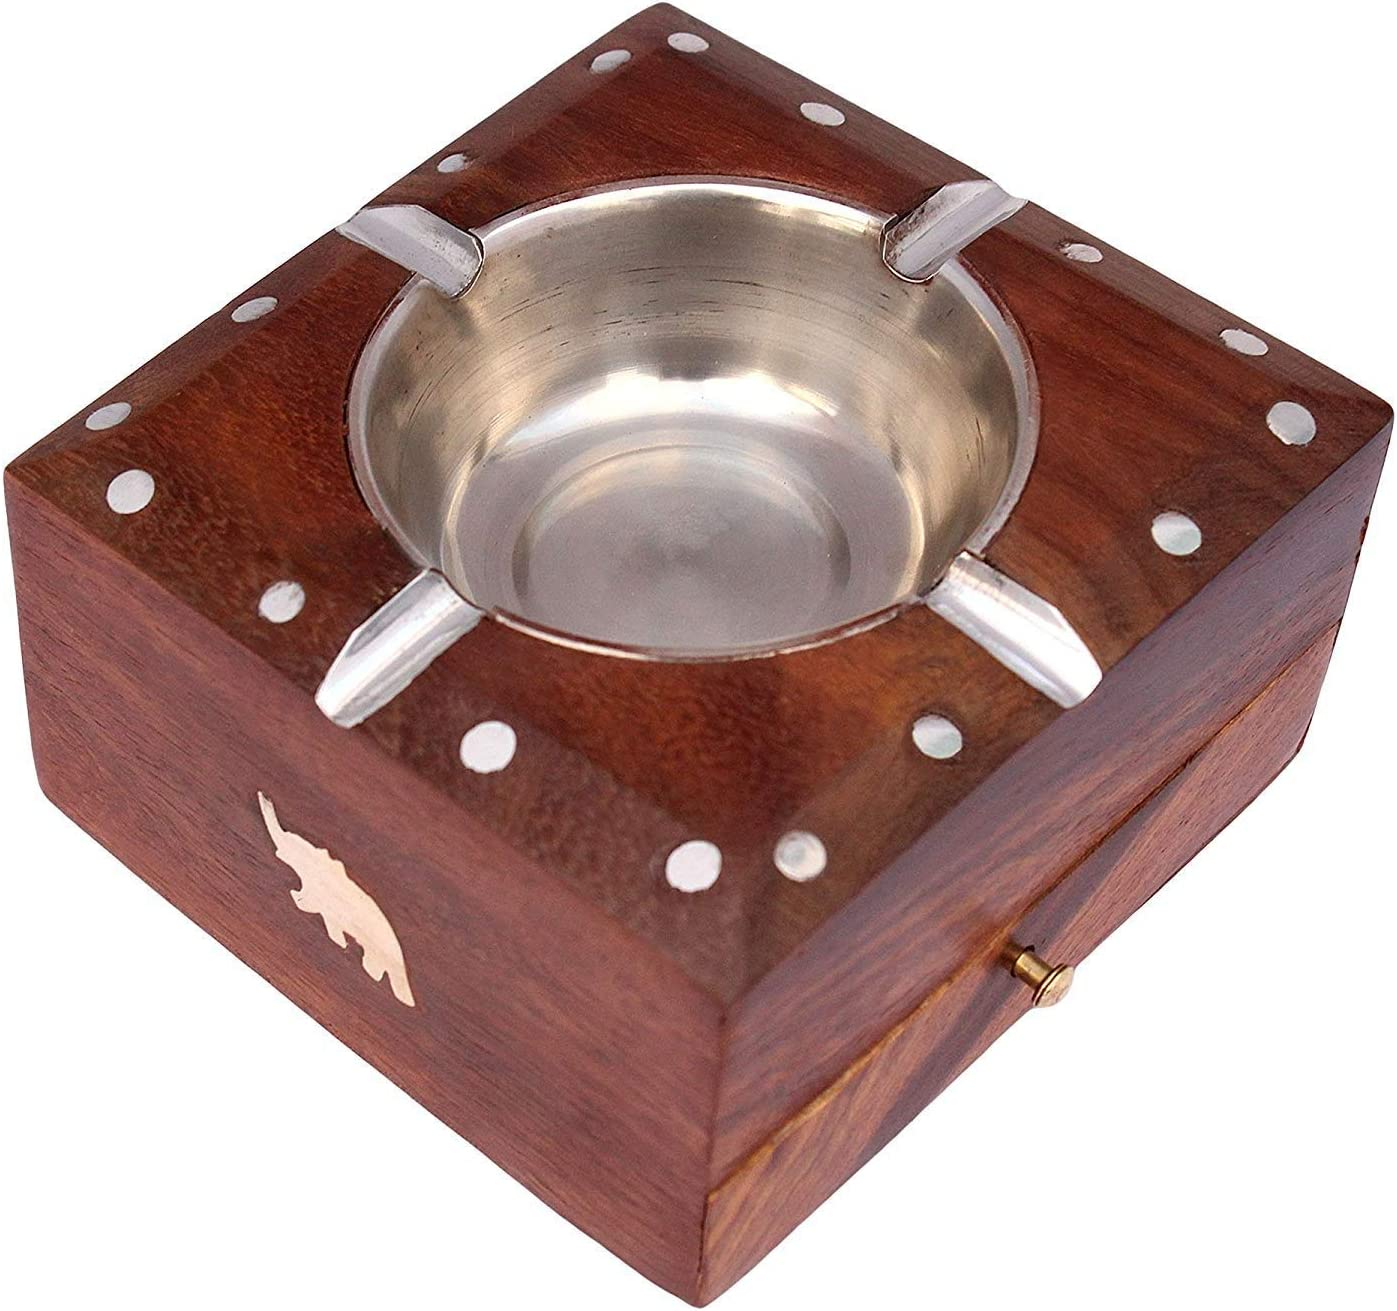 Artisans Of India Ashtray with lid